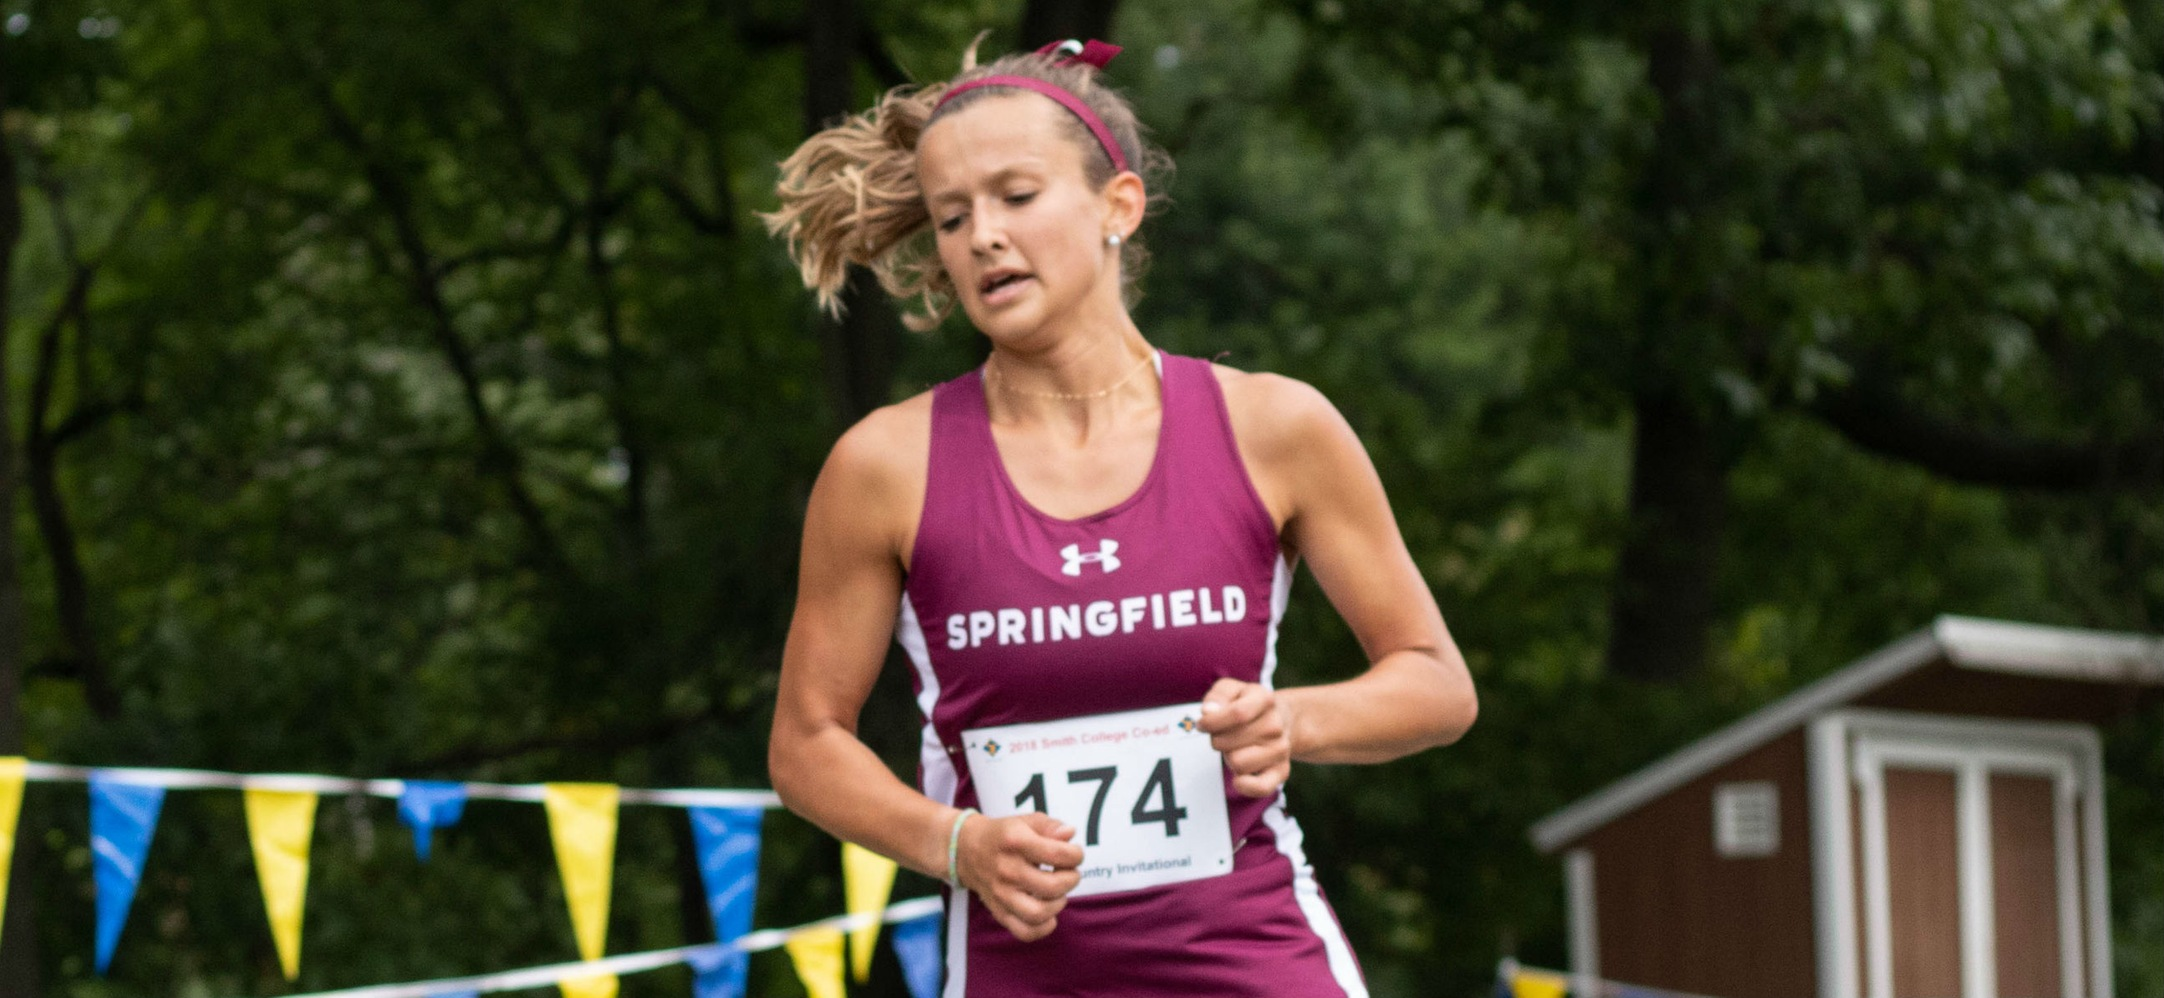 Madeia Leads Women's Cross Country at Connecticut College Invitational